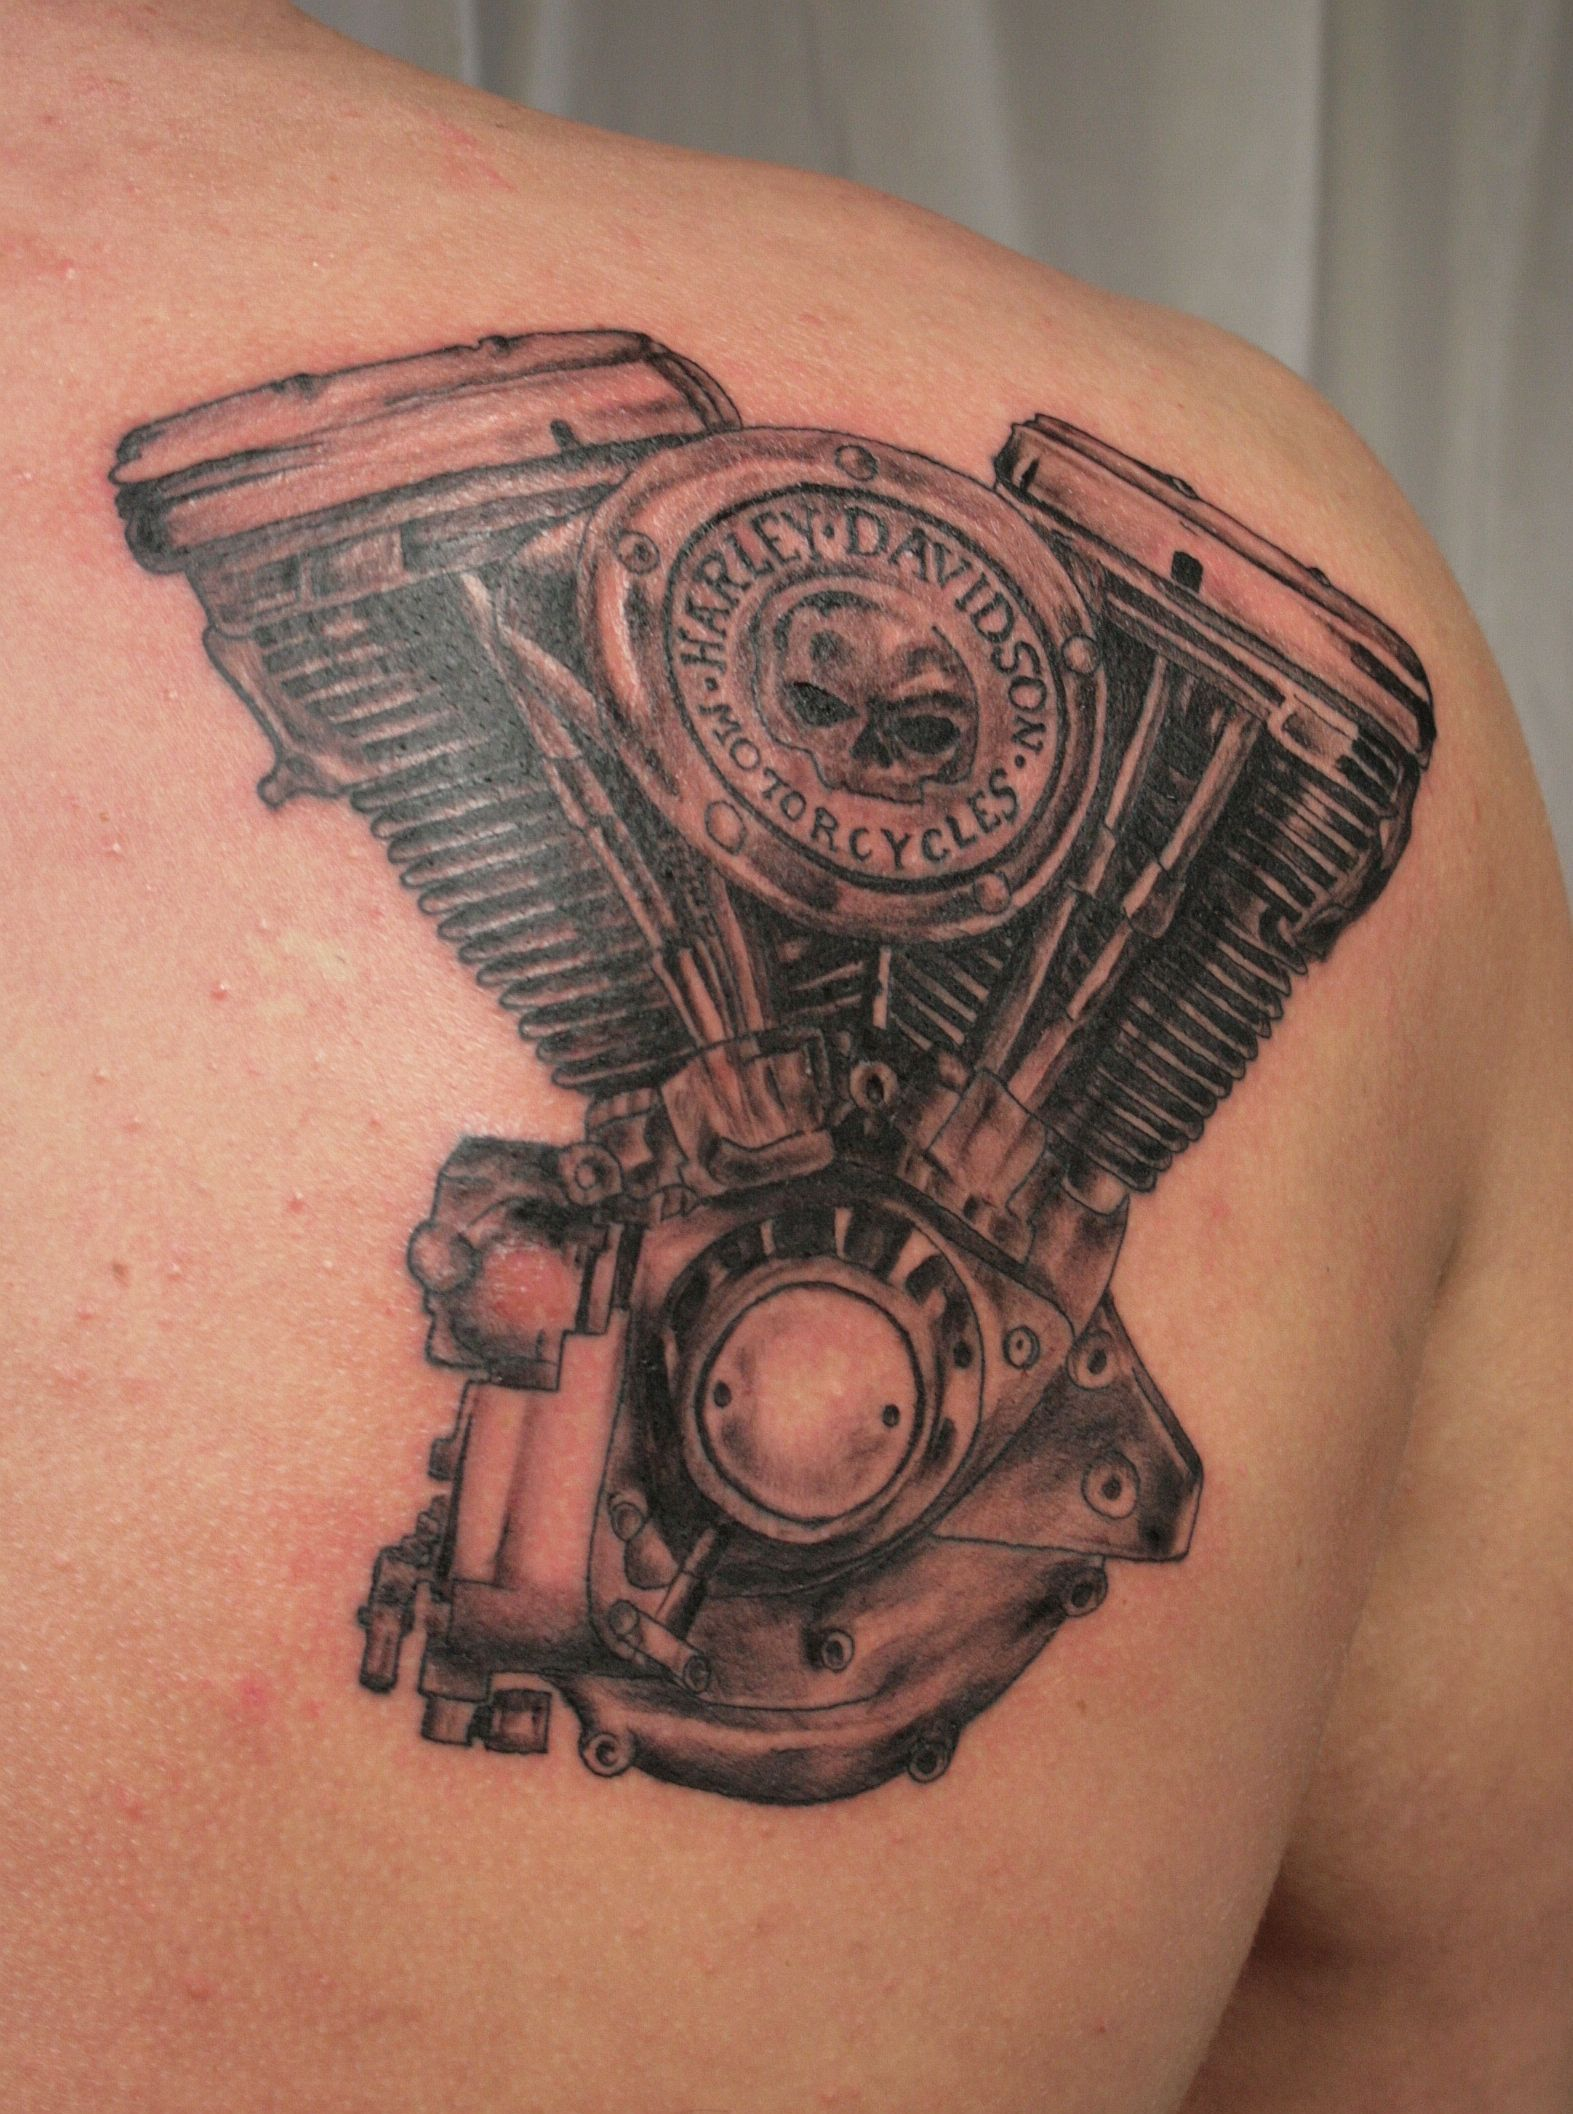 Route 66 tattoo picture at checkoutmyink com - This Tattoo Of A Harley Davidson Engine Was A Pleasant Surprise Description From Peachesandcream